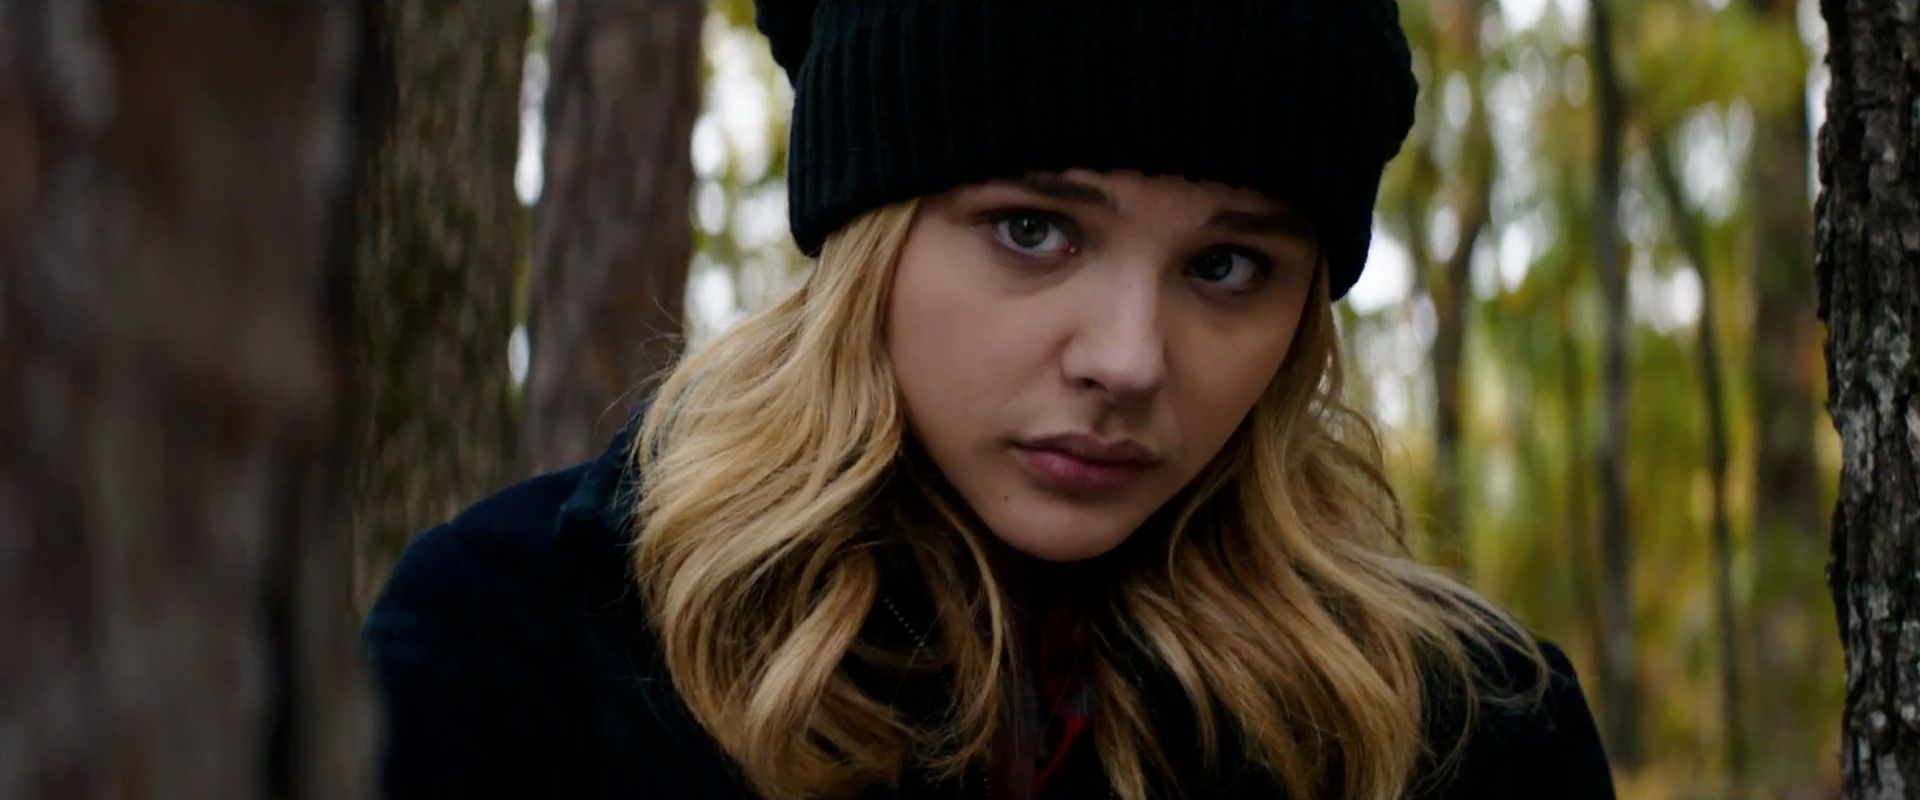 Go behind the scenes of 5th Wave's journey from YA novel to